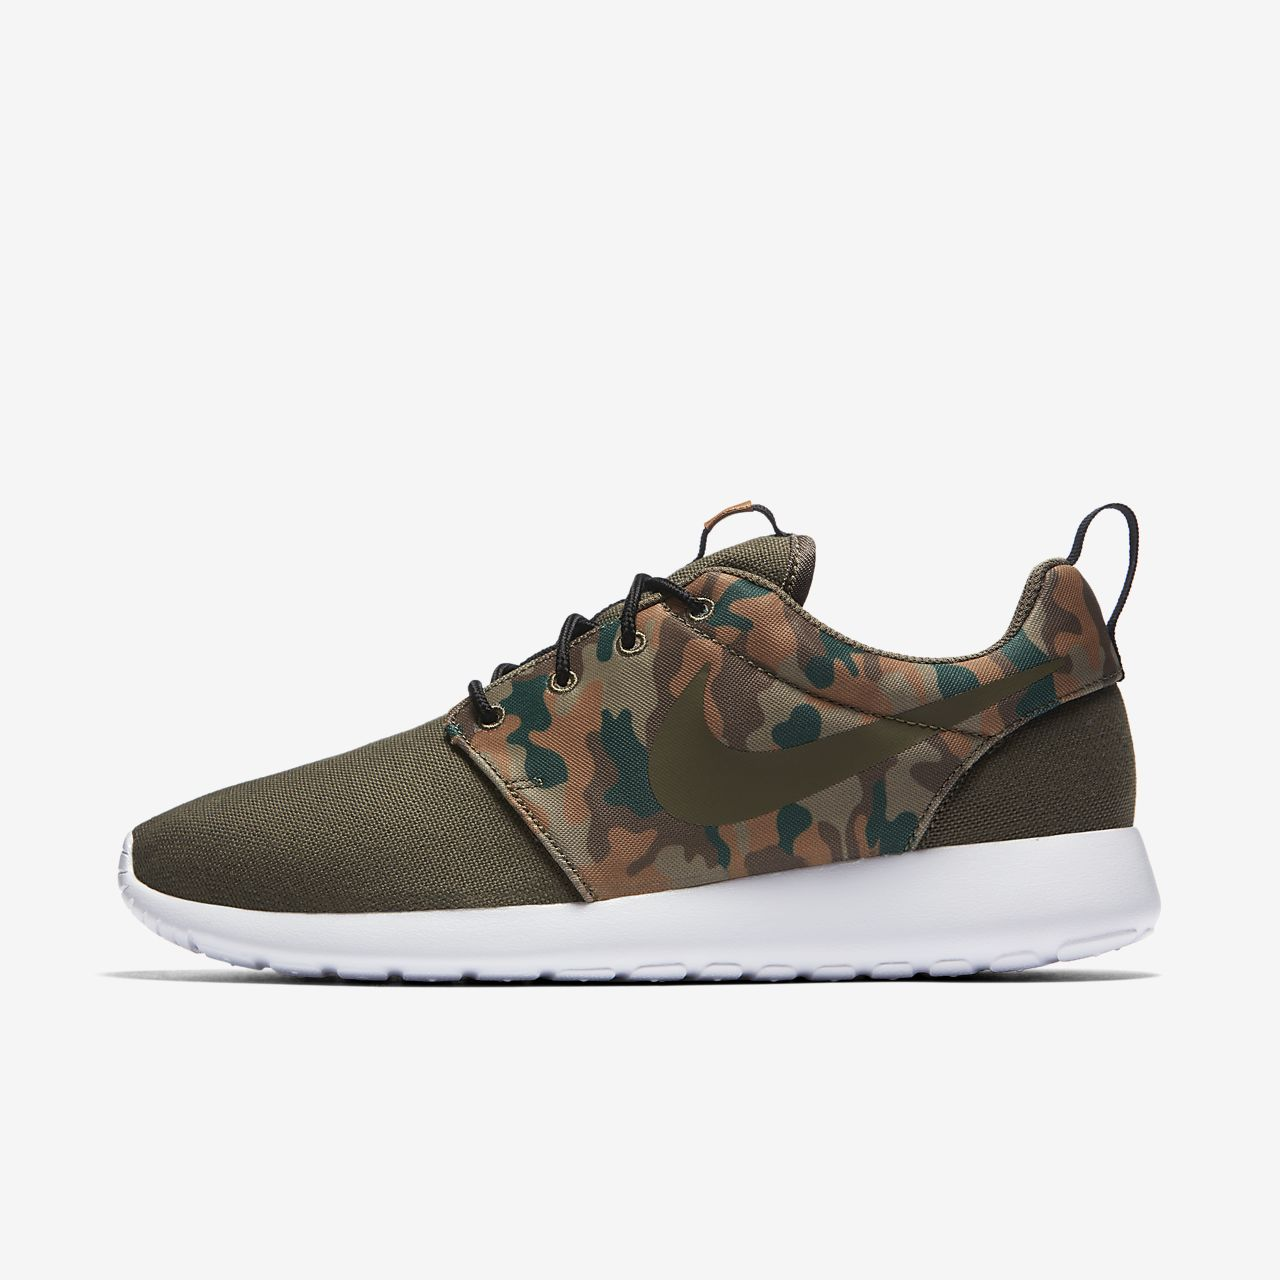 5b5affc055a0 Nike Roshe One SE Men s Shoe. Nike.com